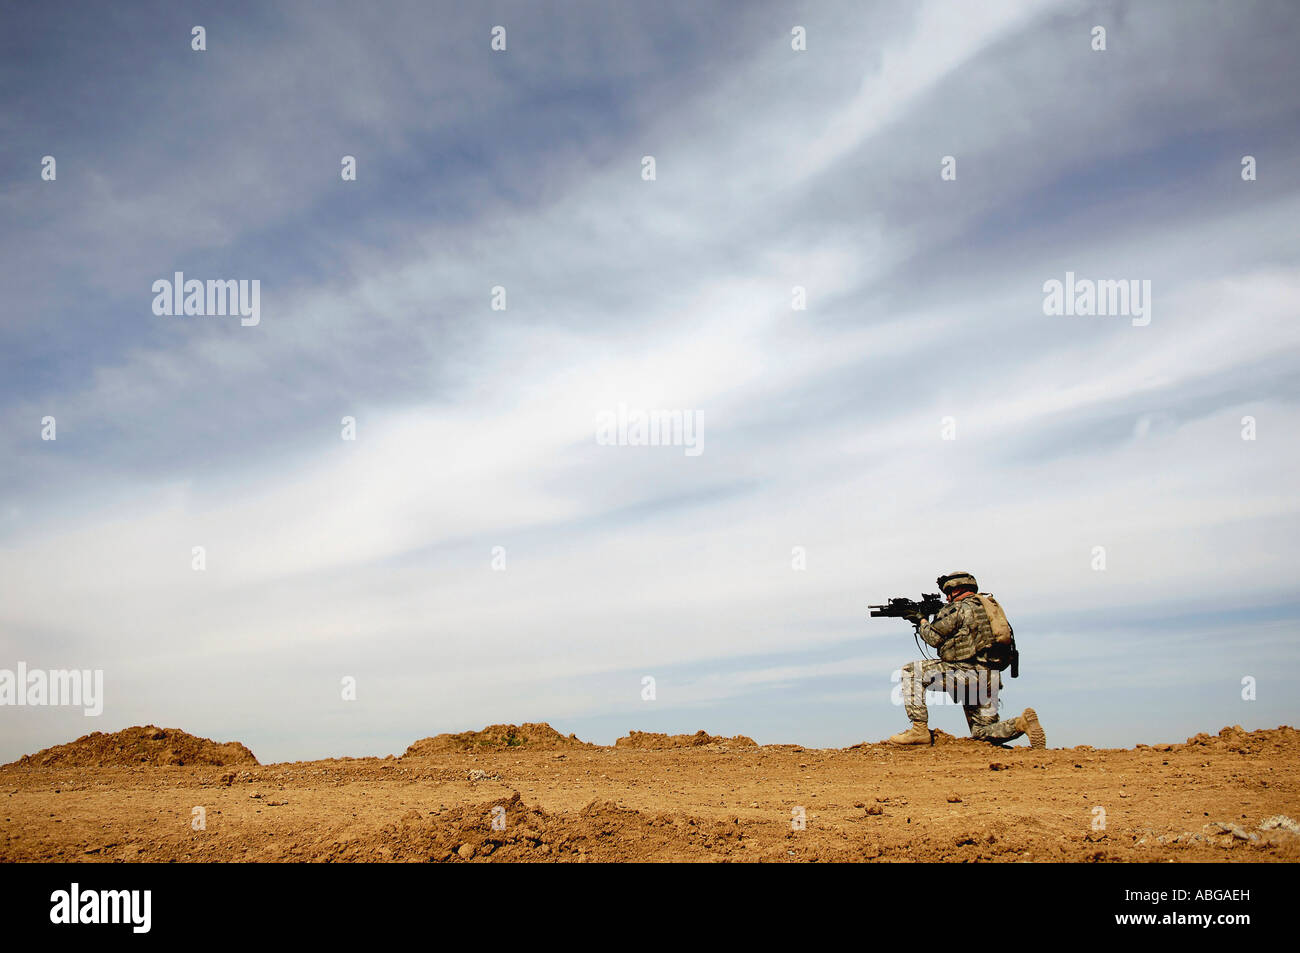 U.S. Army Sergeant provides security during a patrol of the Riyahd village in Iraq March 8, 2007. - Stock Image